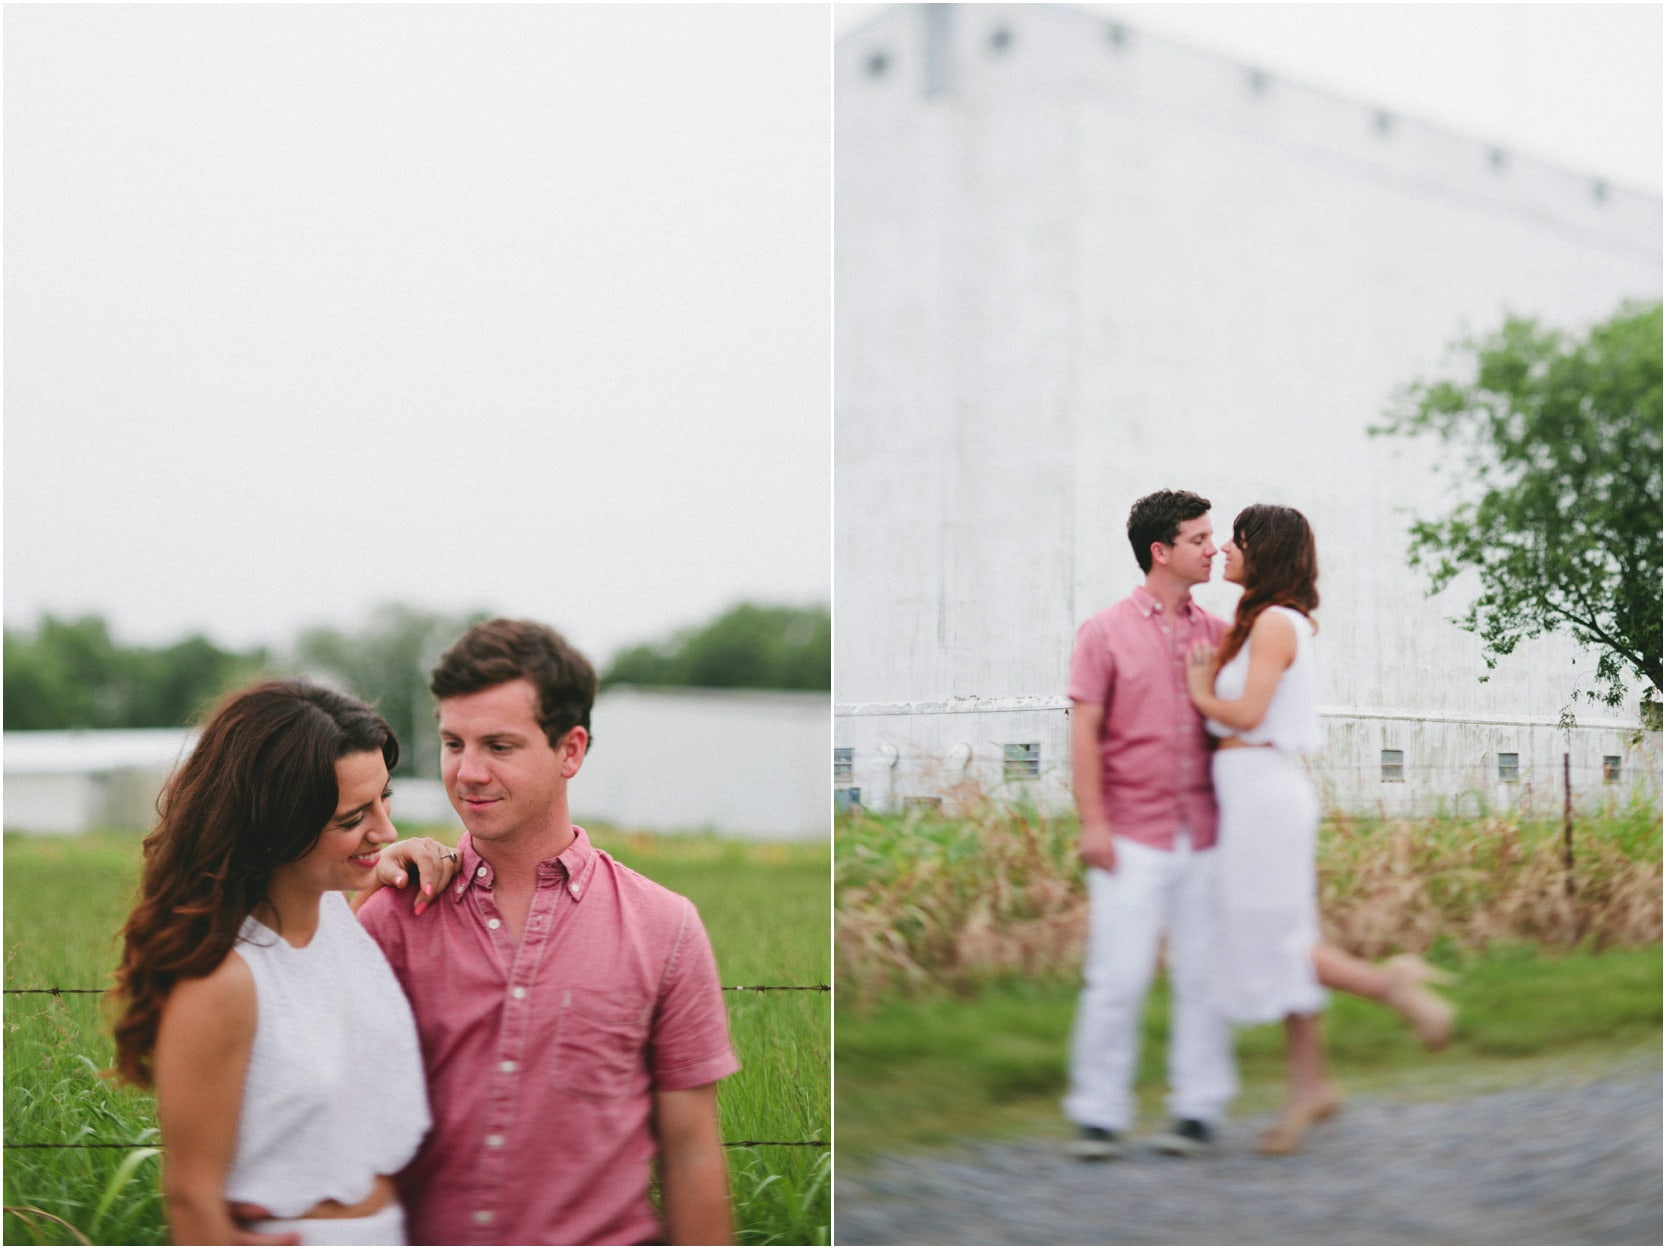 domjo_engagements__107_blogstomped